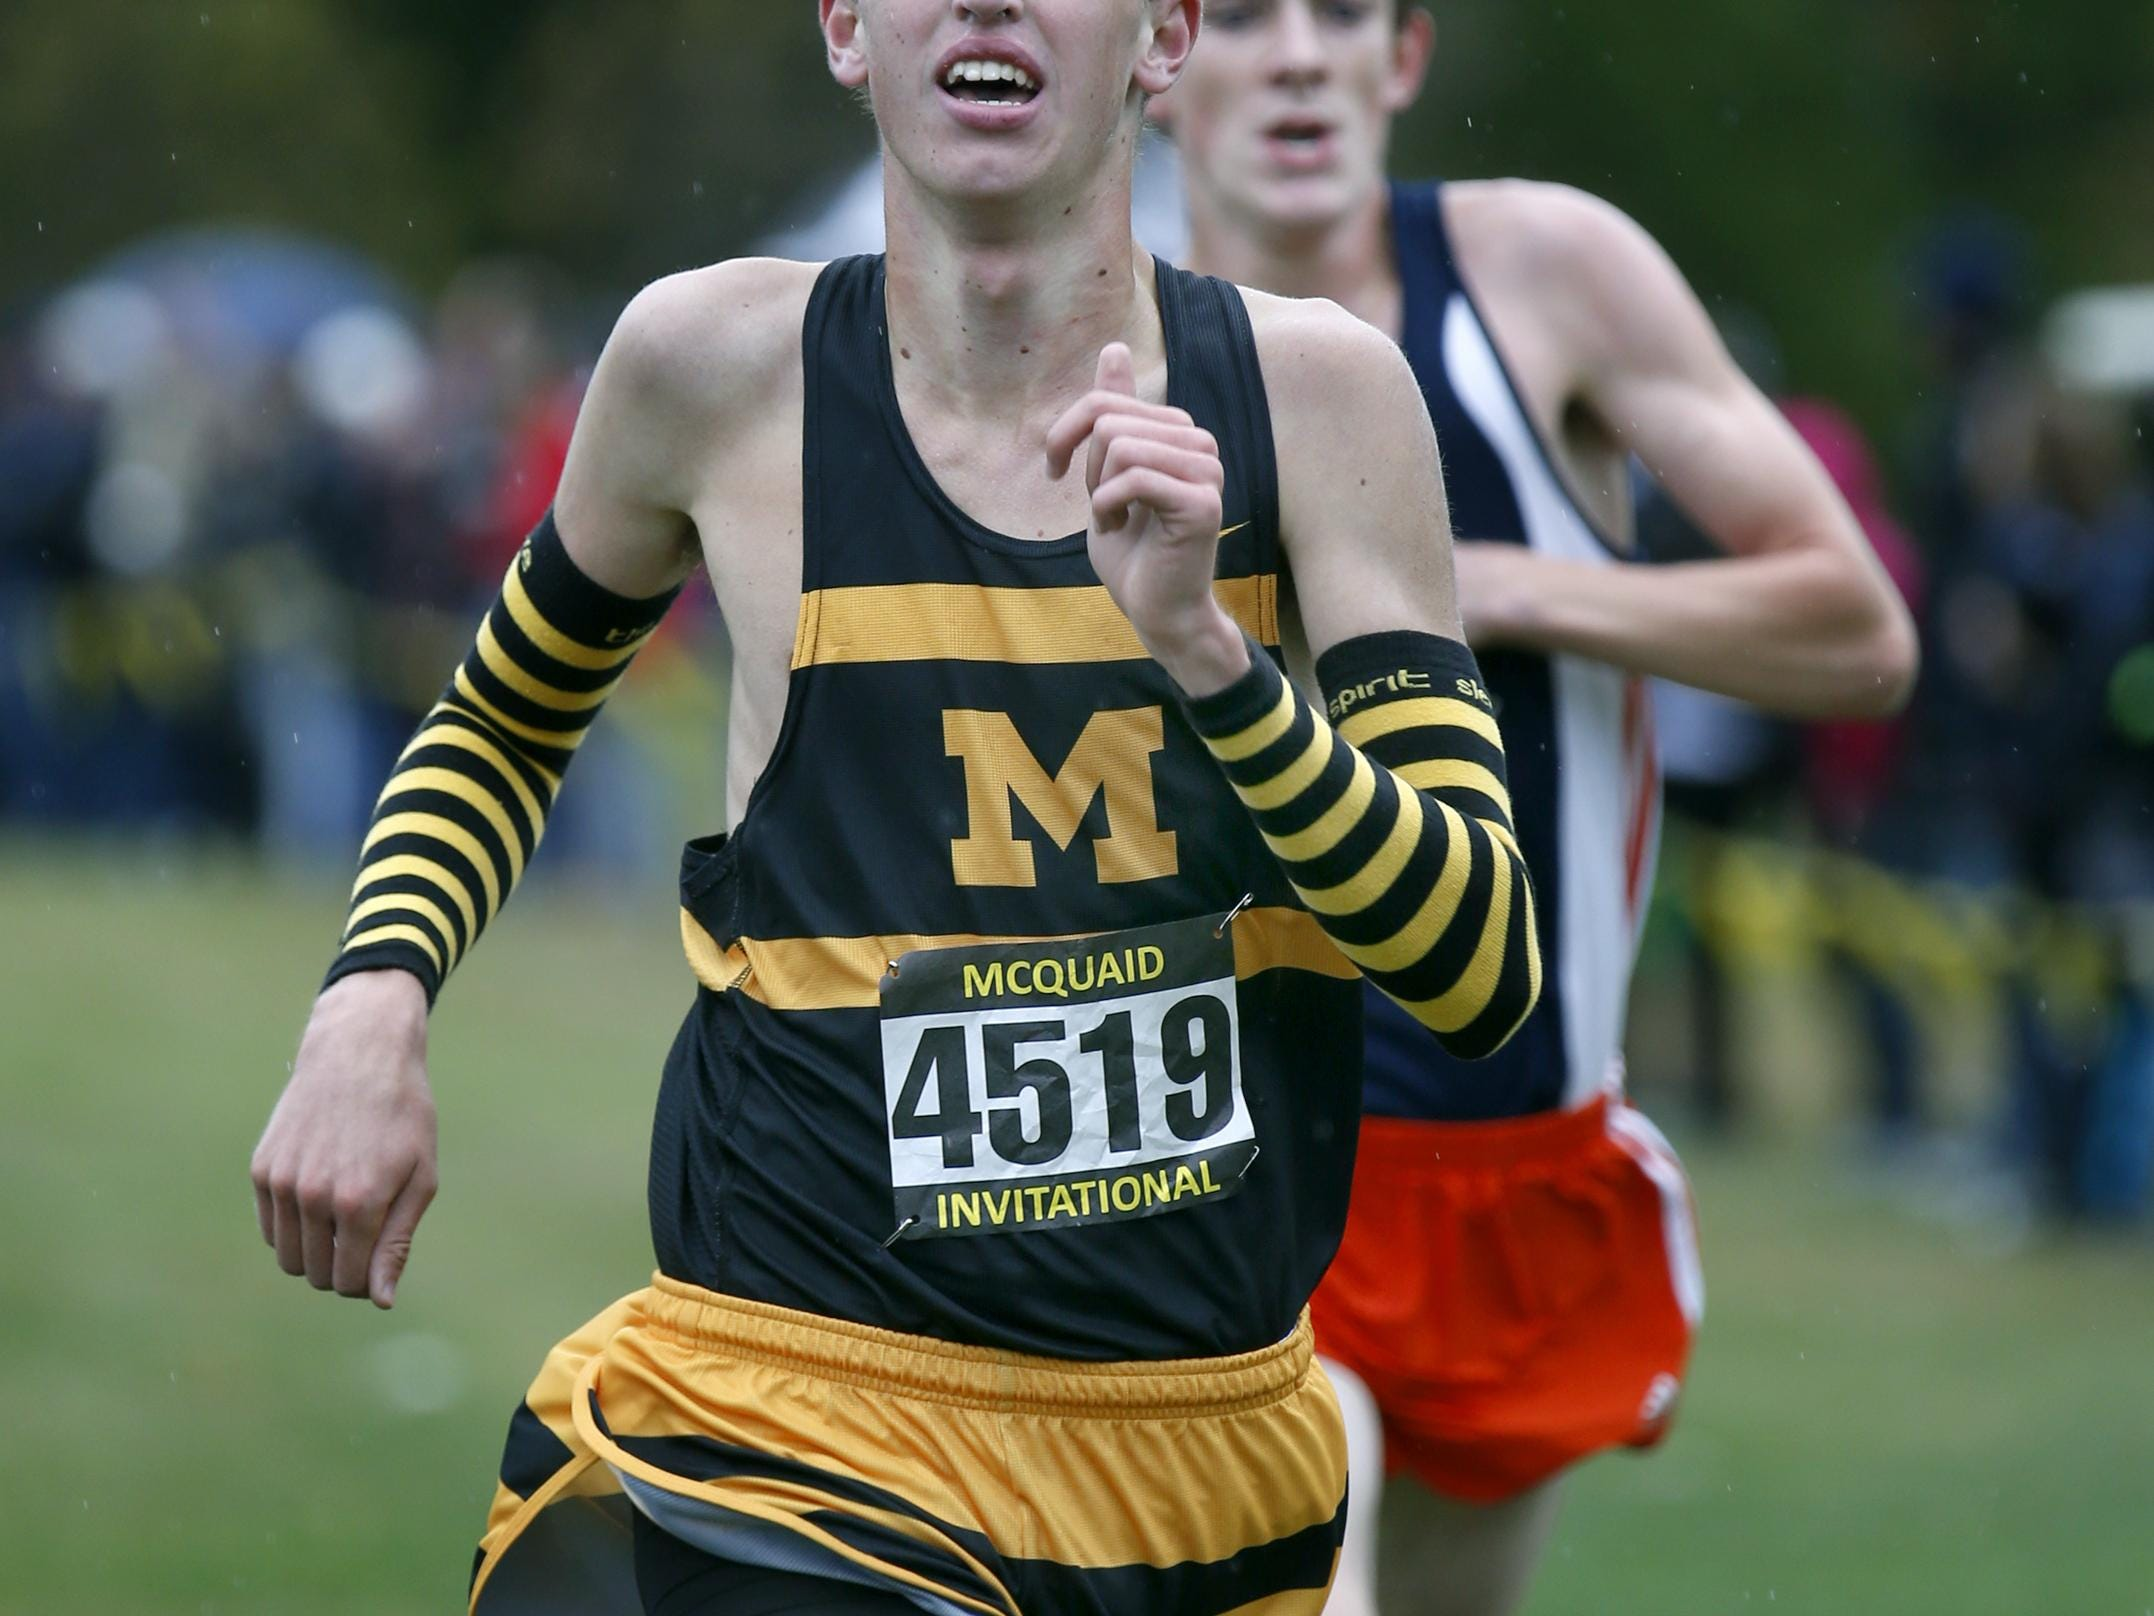 Boys Seeded Varsity AAA: In 4th McQuaid Jesuit's place Donny Glavin with a time of 15:08.6 during the McQuaid Invitational cross country meet at Genesee Valley Park.